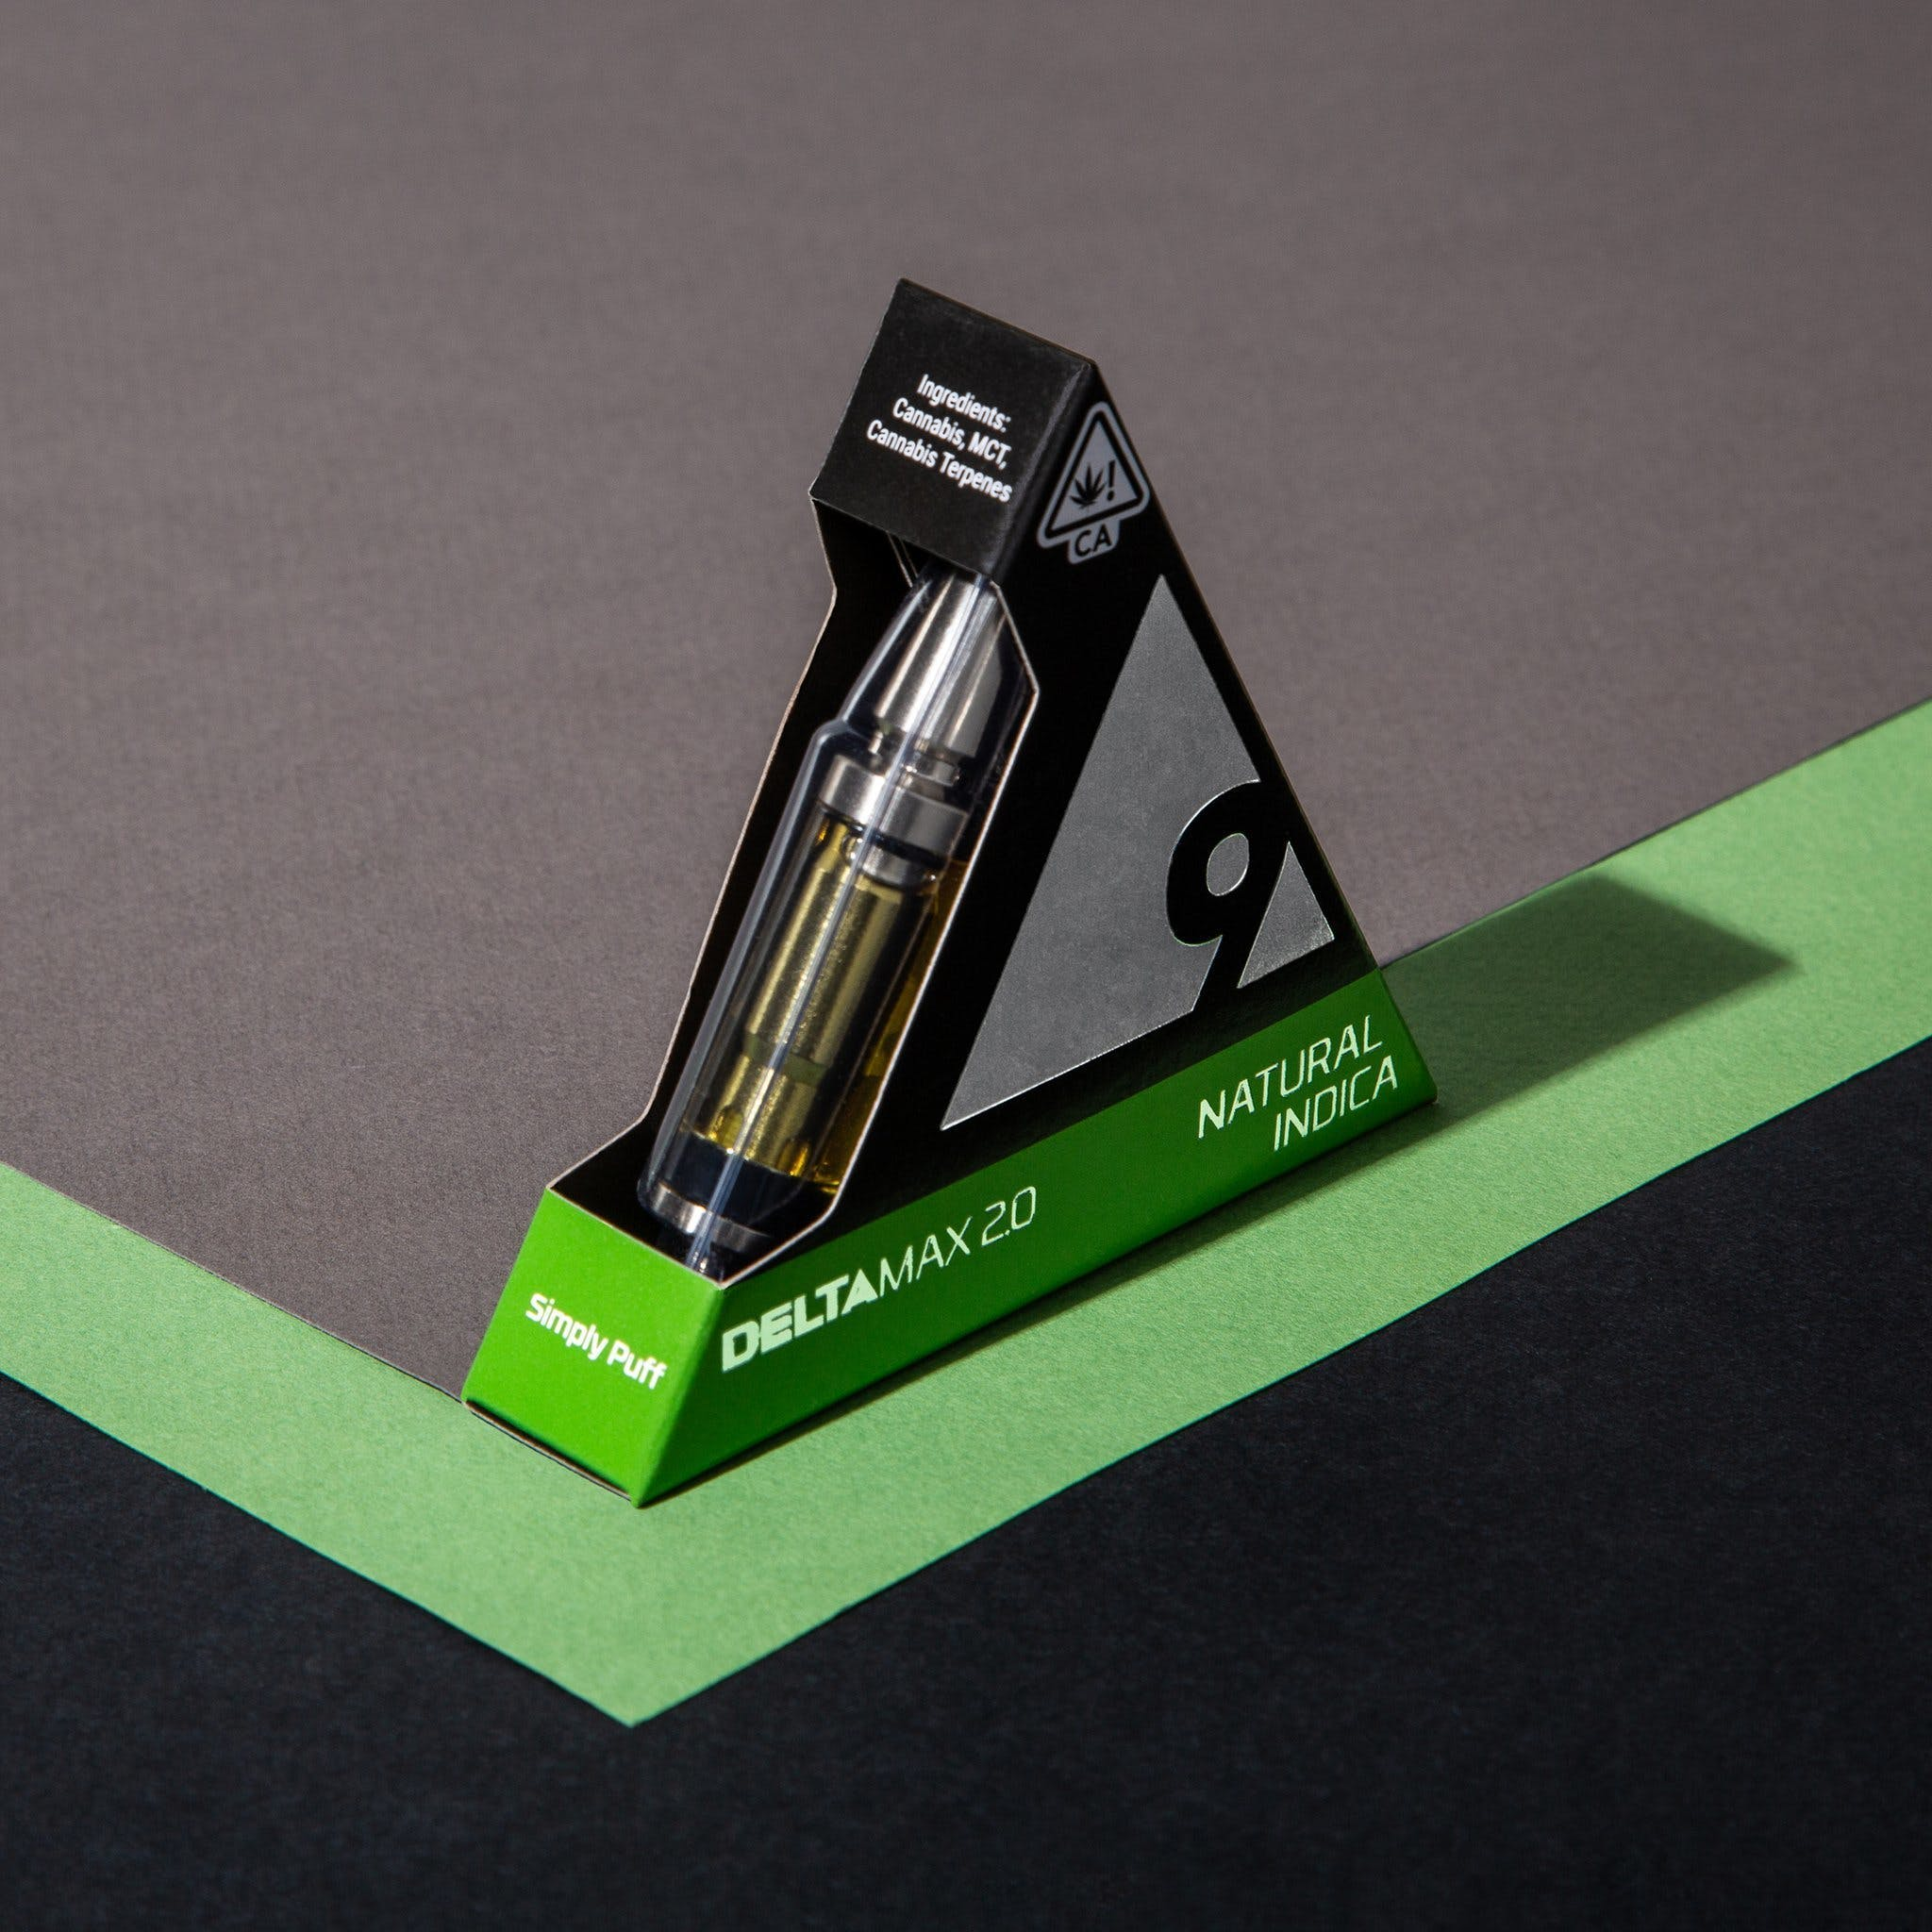 marijuana-dispensaries-8848-fruitridge-rd-sacramento-delta-max-cartridge-og-kush